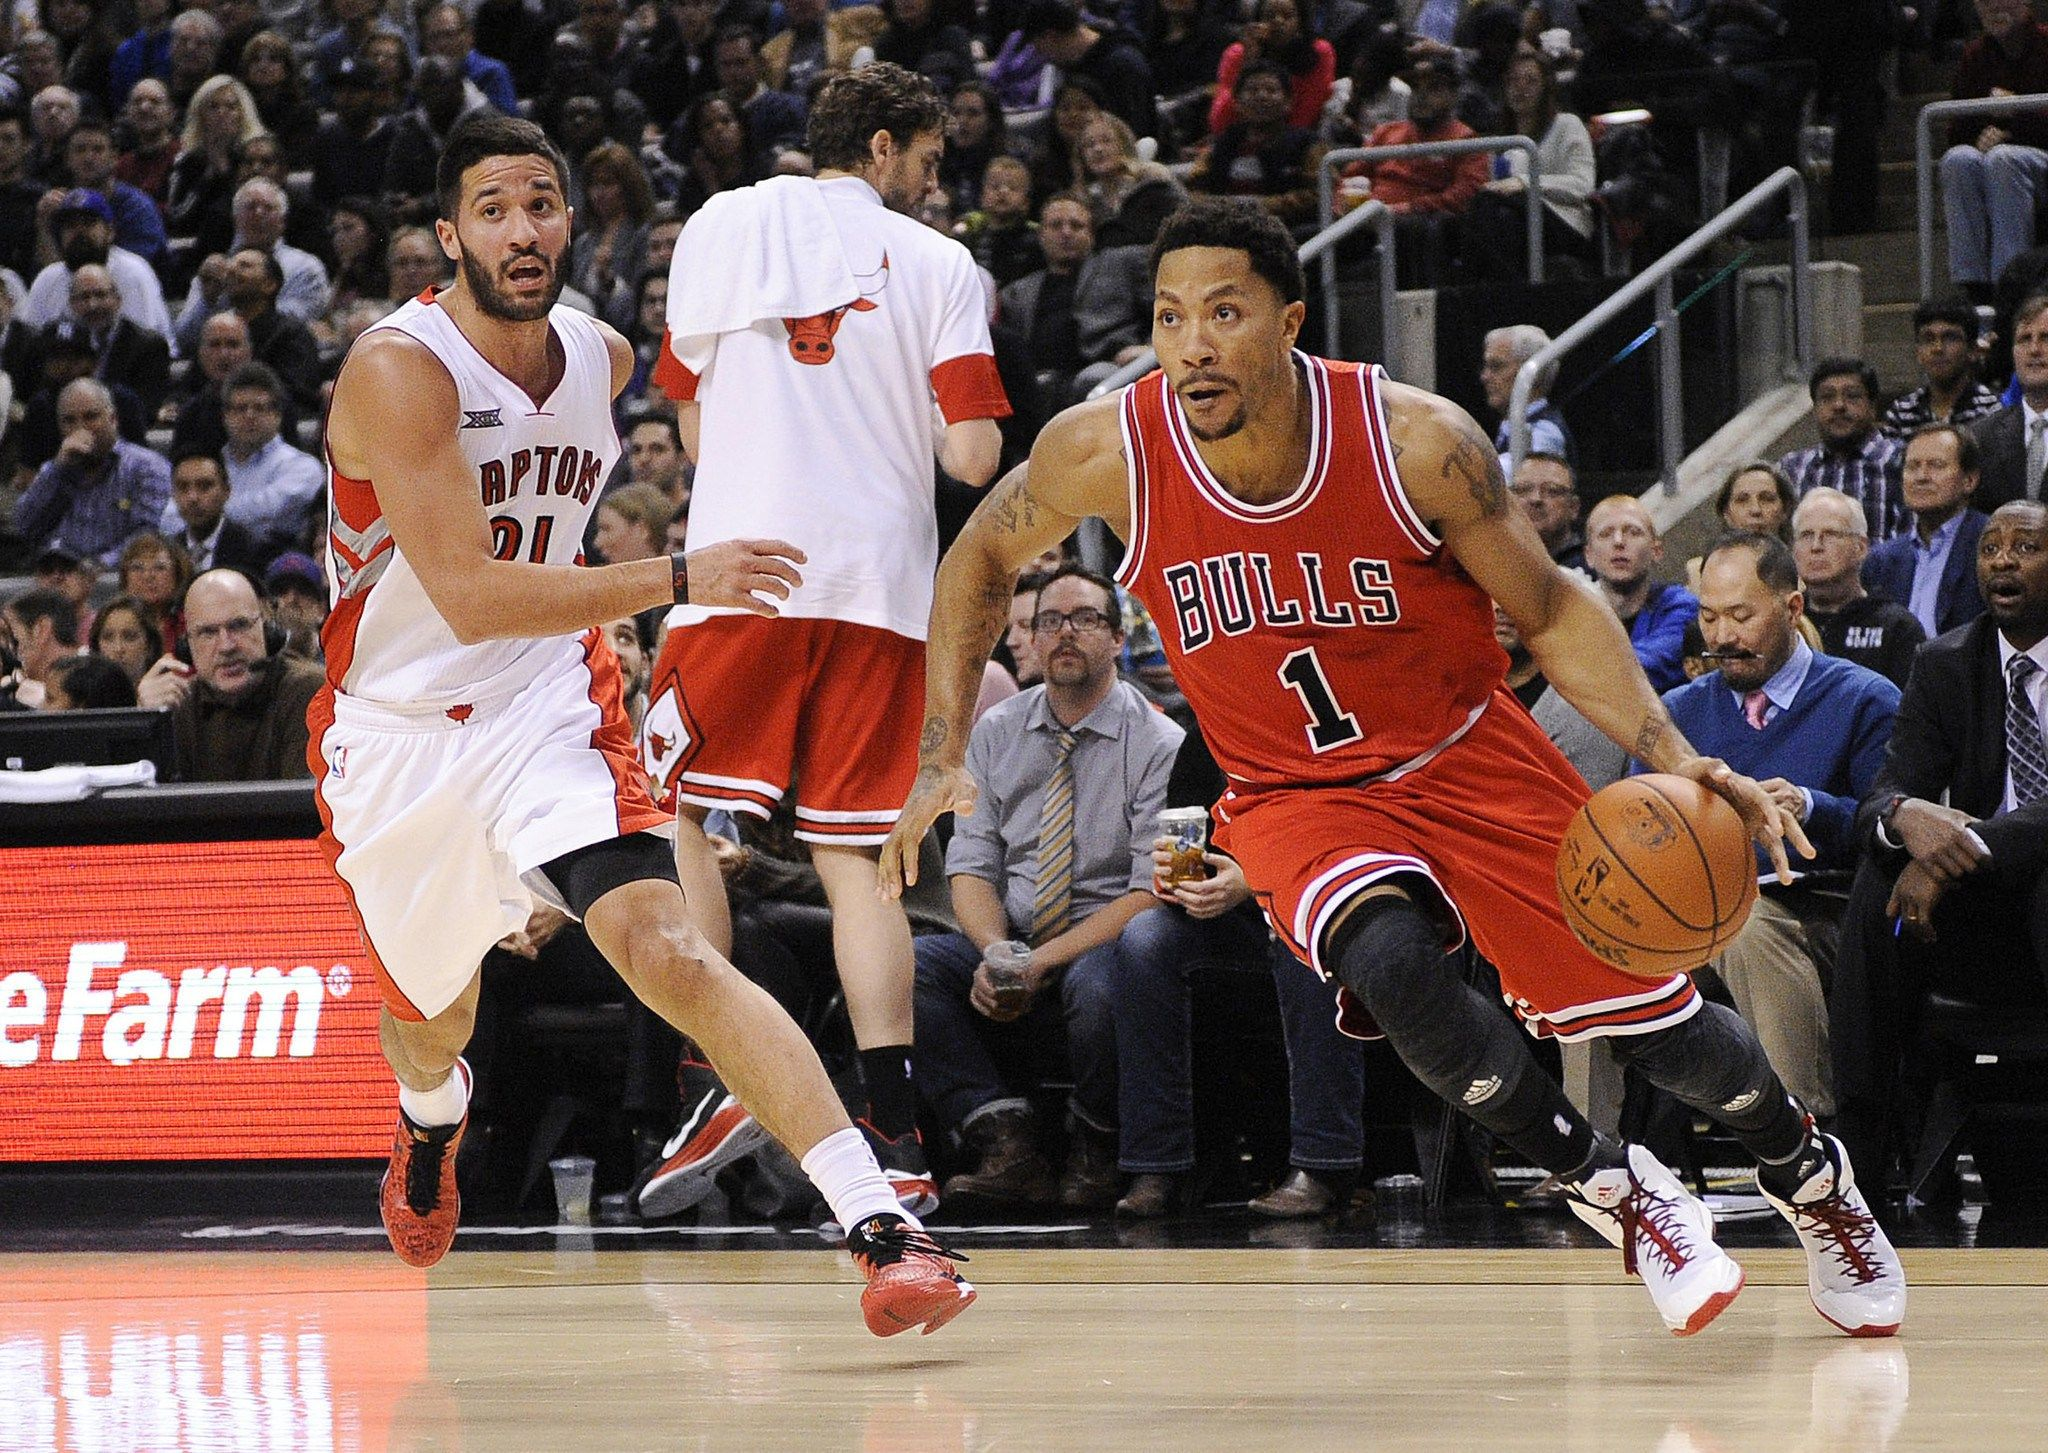 Chicago Bulls: It's Game Time